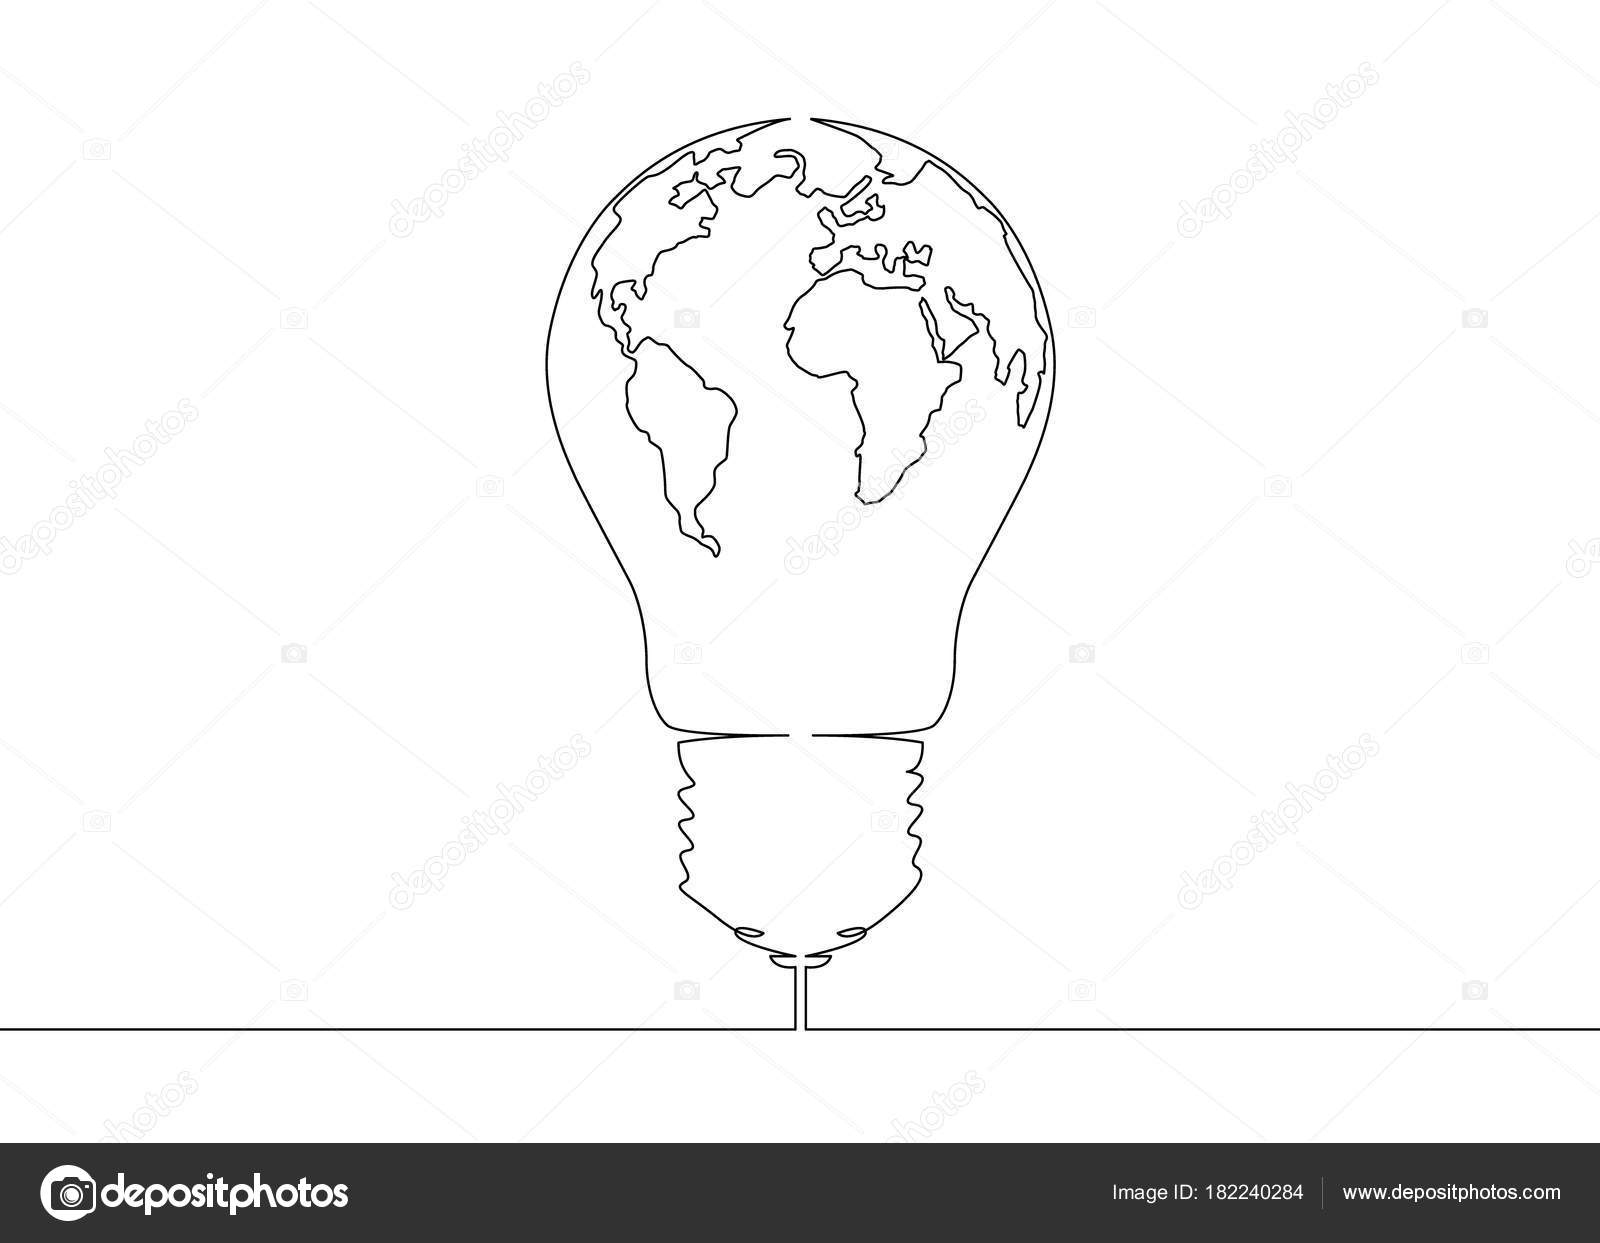 Single Line Text Art : Continuous line drawing light bulb symbol idea world map globe